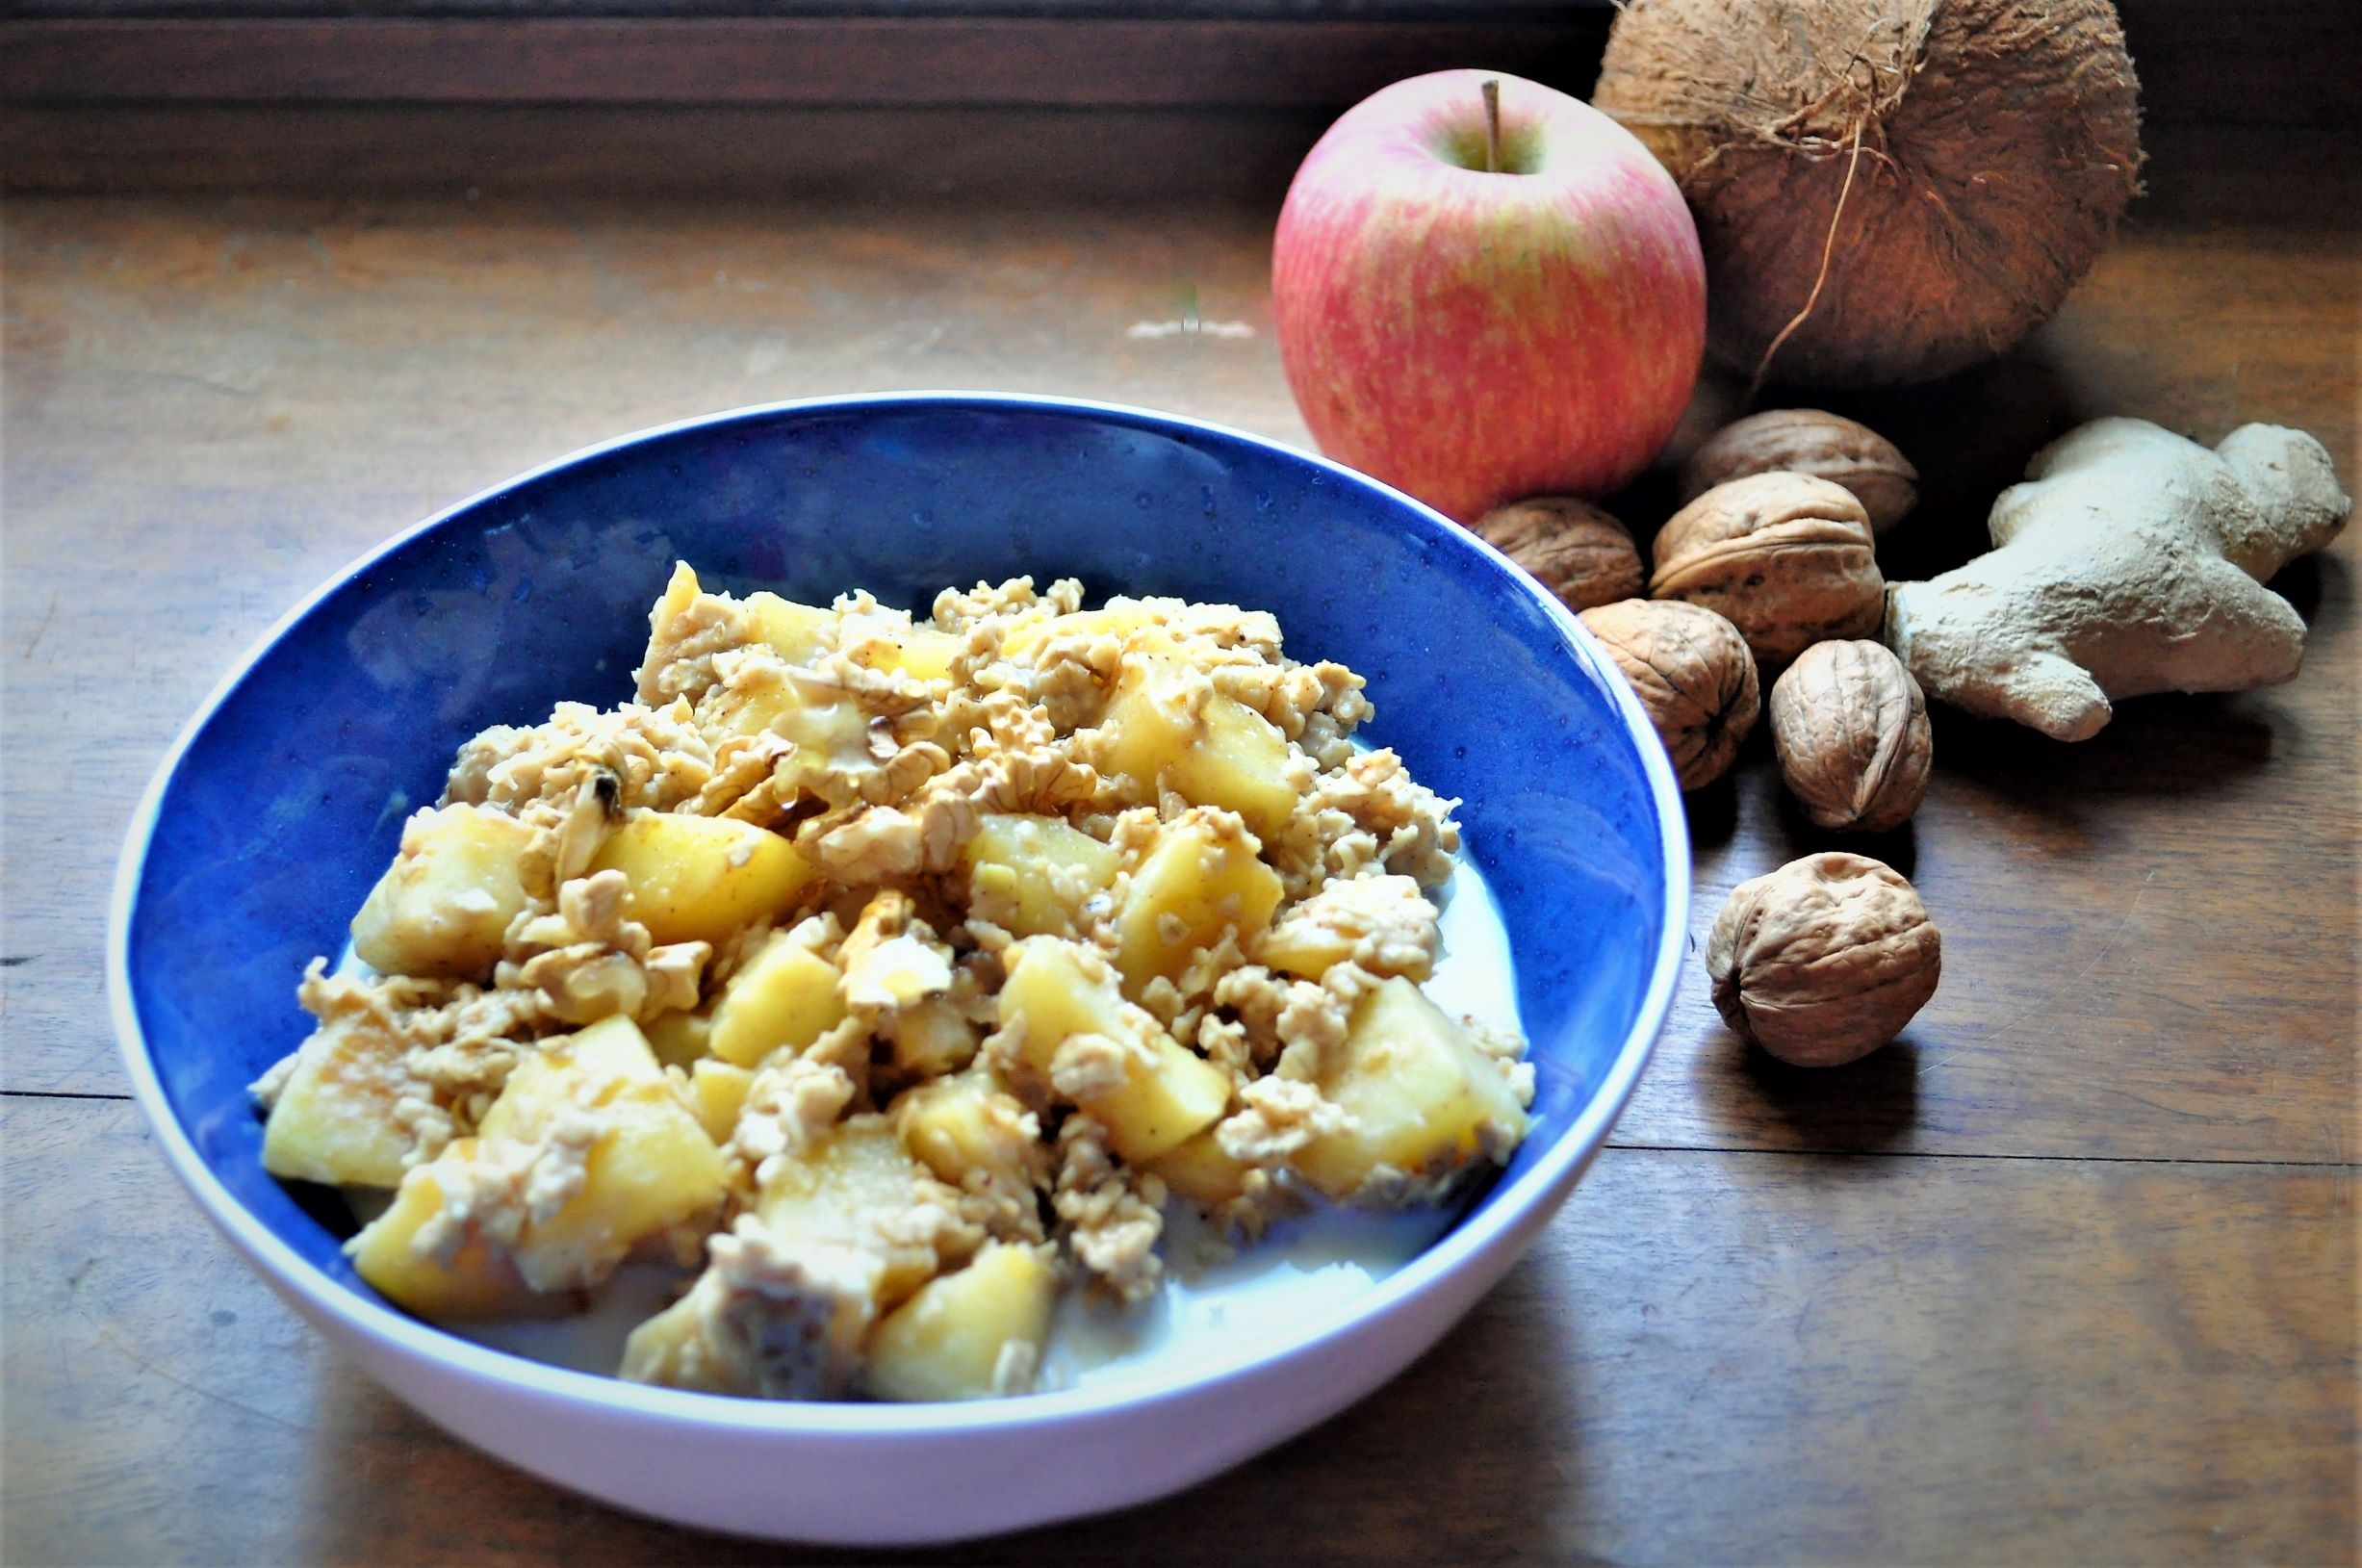 Apple and cinnamon oatmeal